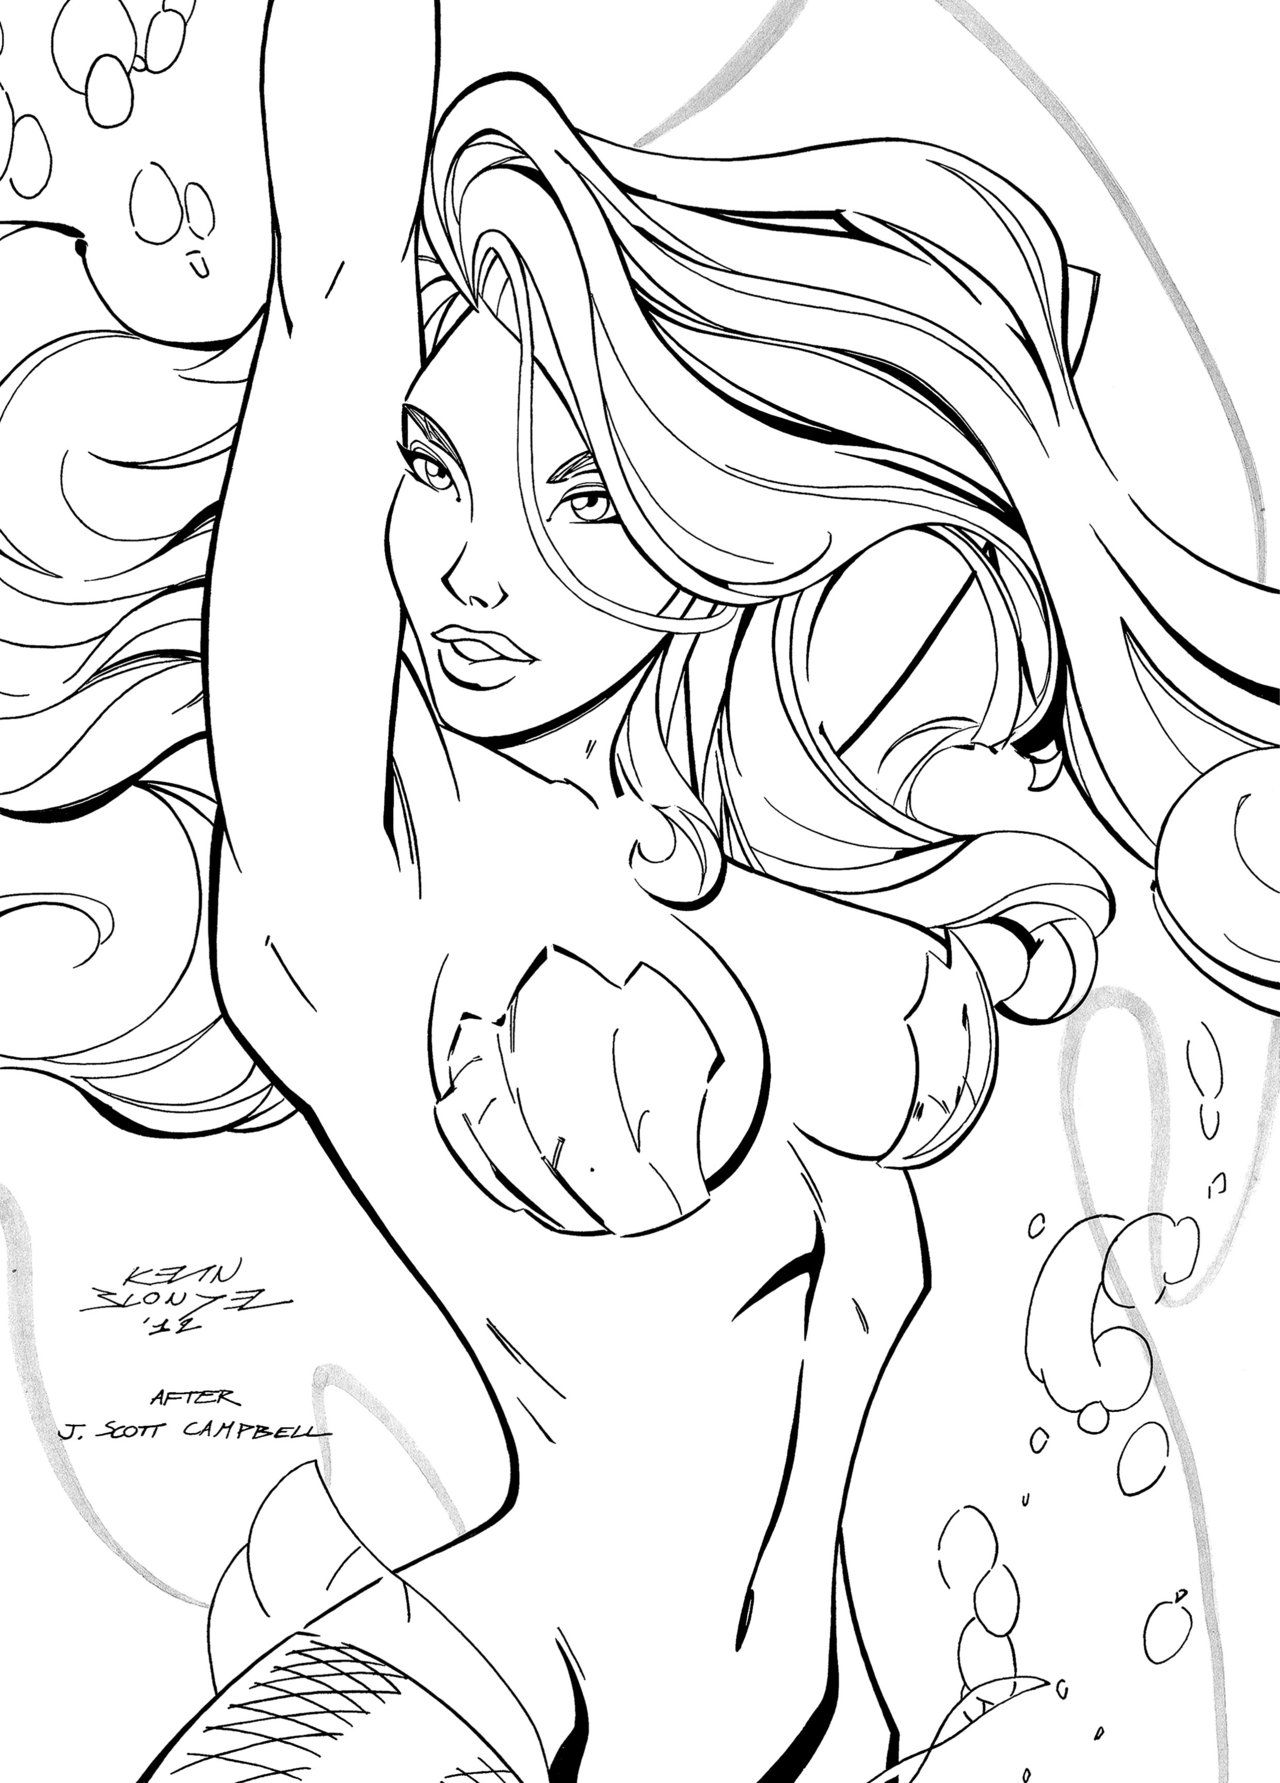 Realistic Mermaid Coloring Pages Free Printable | mermaids and such ...